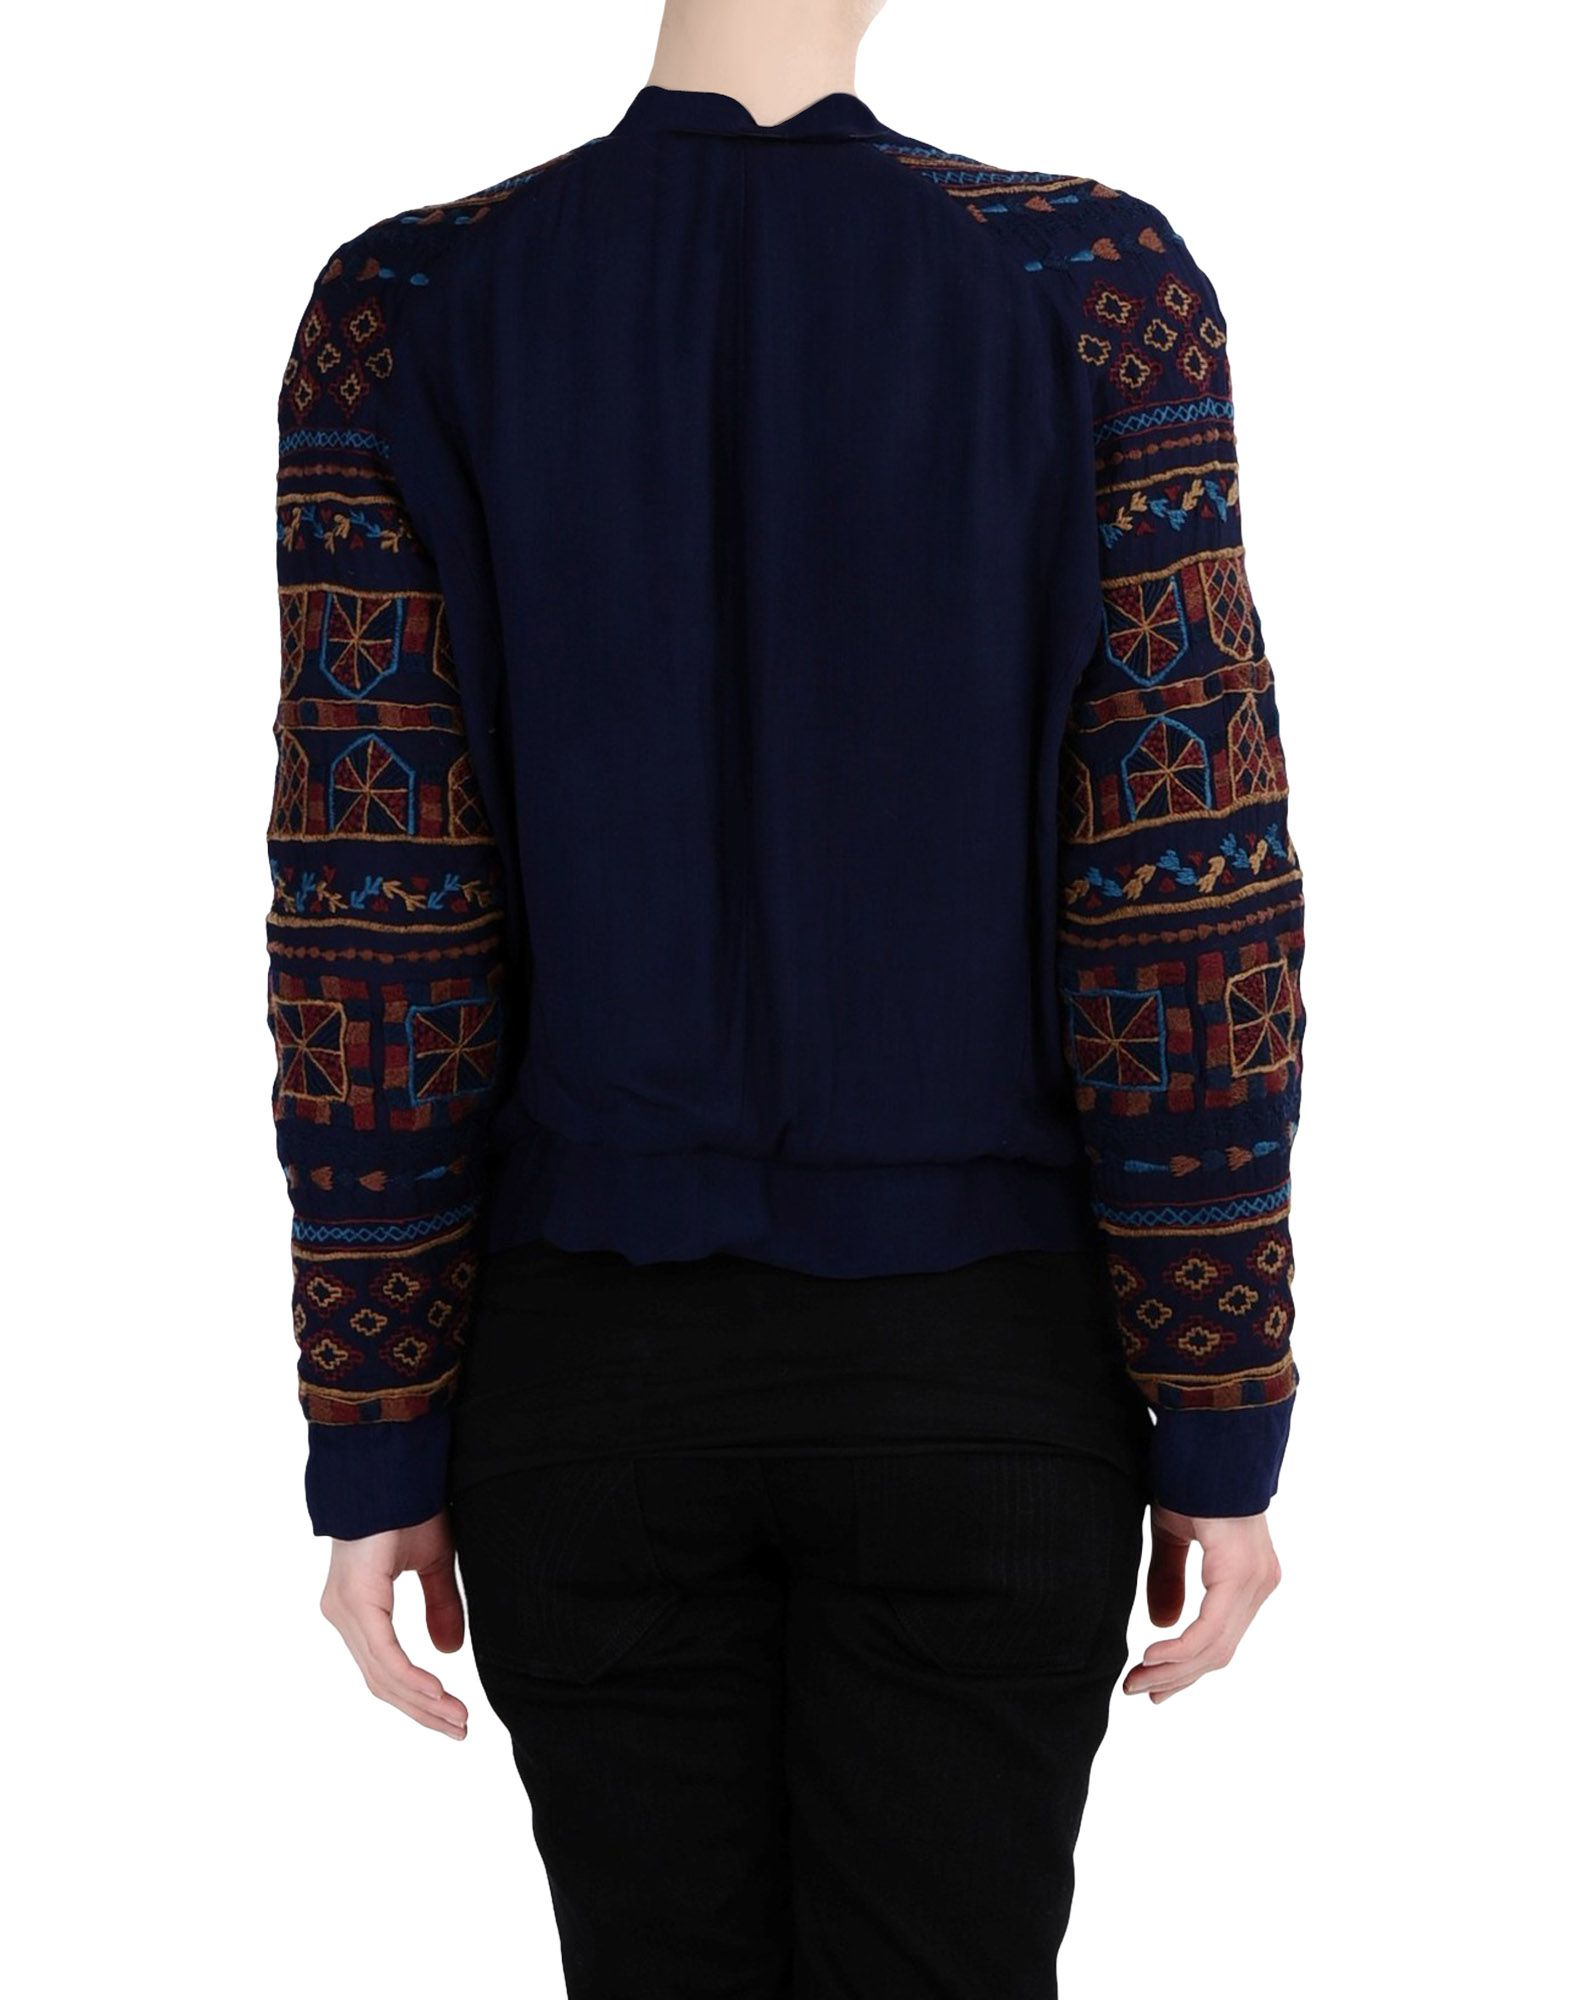 Lyst - Antik Batik Jacket In Blue